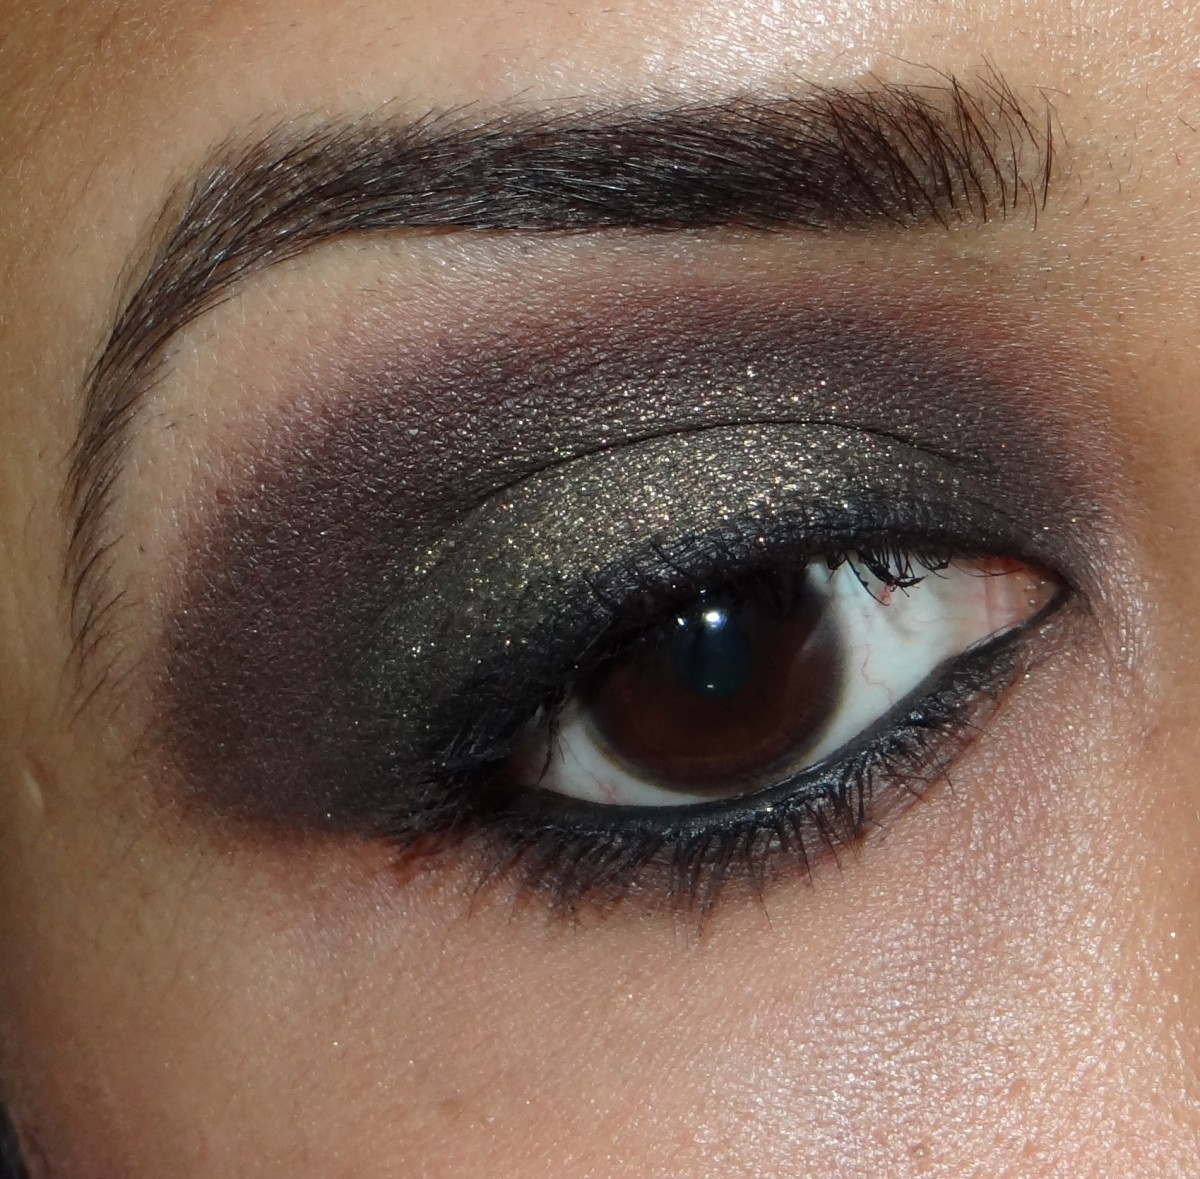 L'Oreal Color Infallible Eyeshadow 040 Cosmic Black review